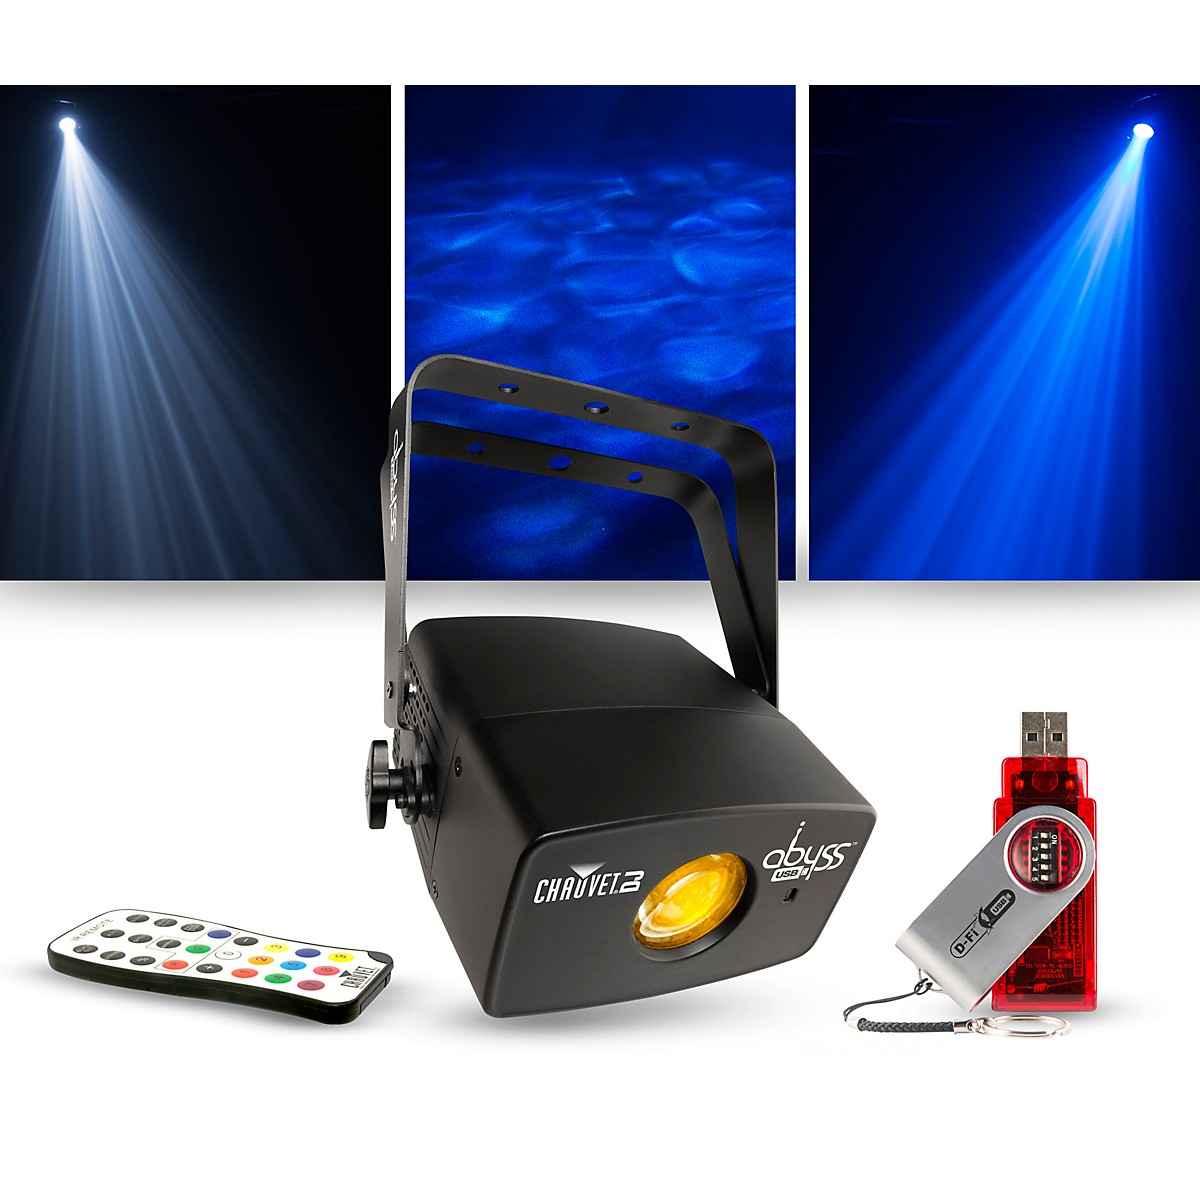 CHAUVET DJ Lighting Package with Abyss USB Multicolored Water Effect with IRC-6 and D-Fi Controllers